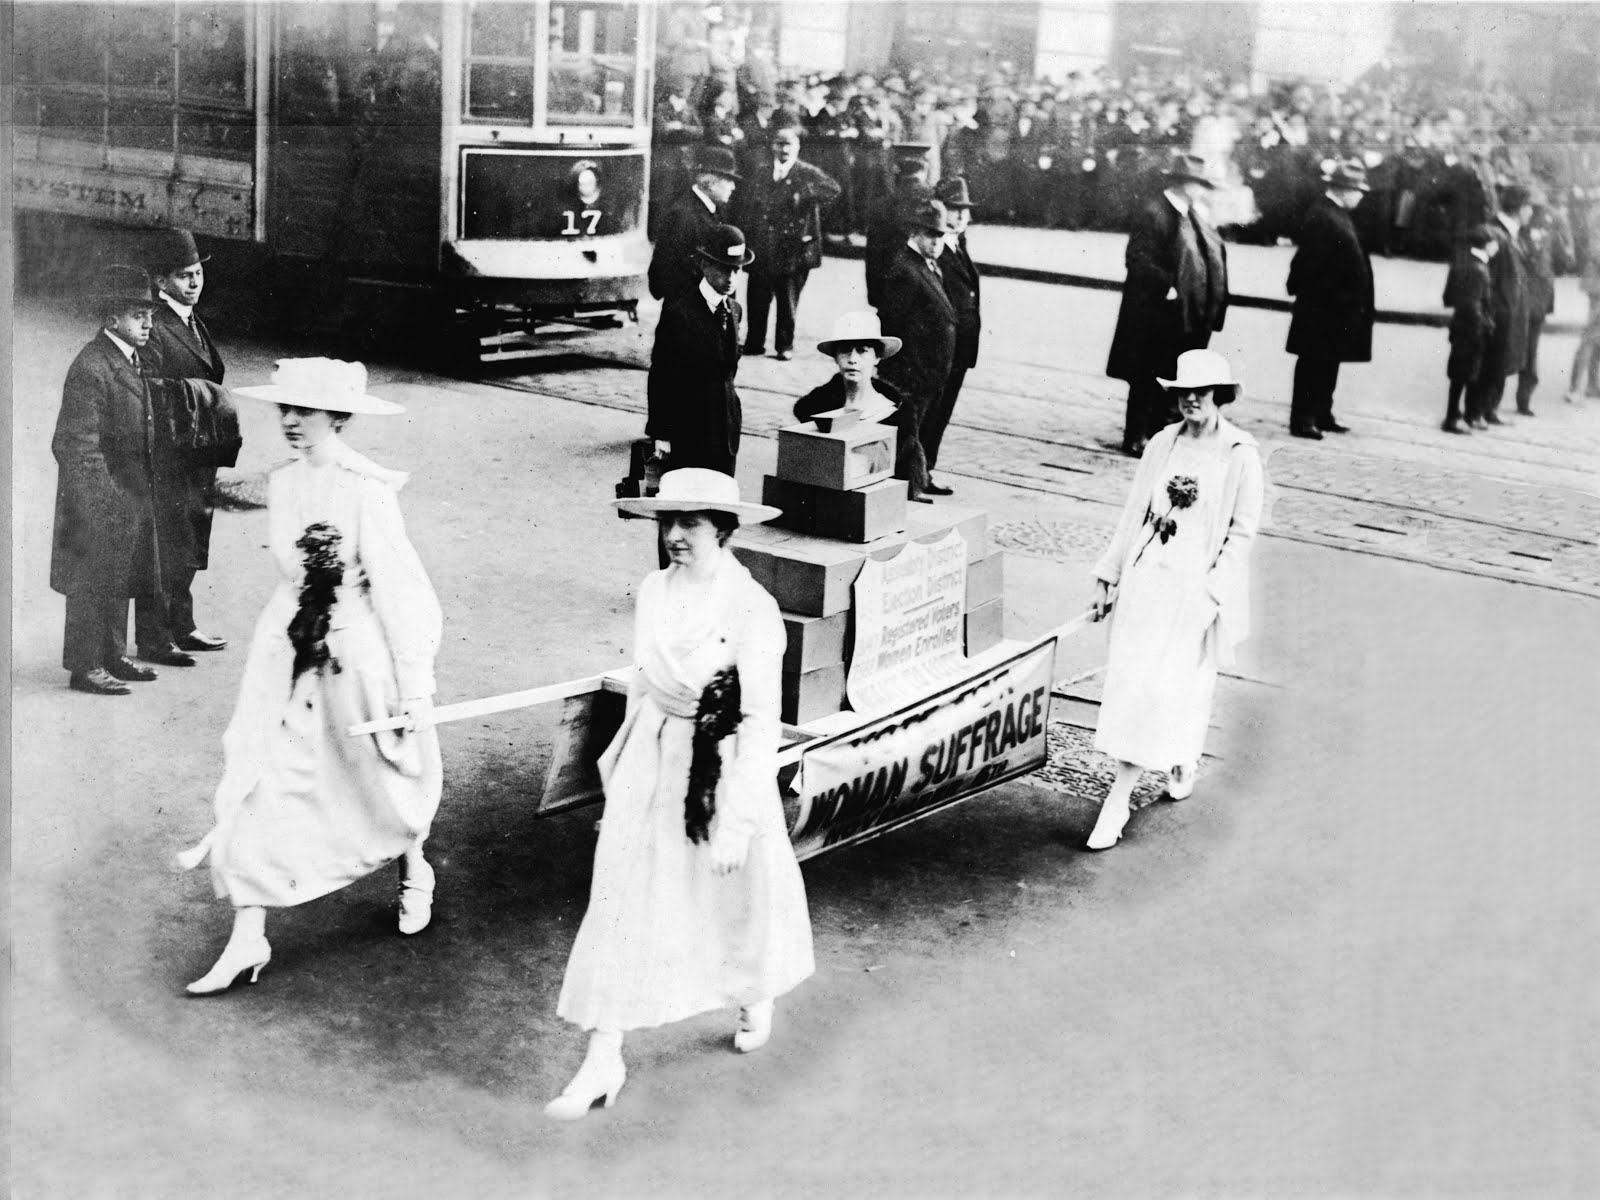 Women's Suffrage parade, NYC 1915